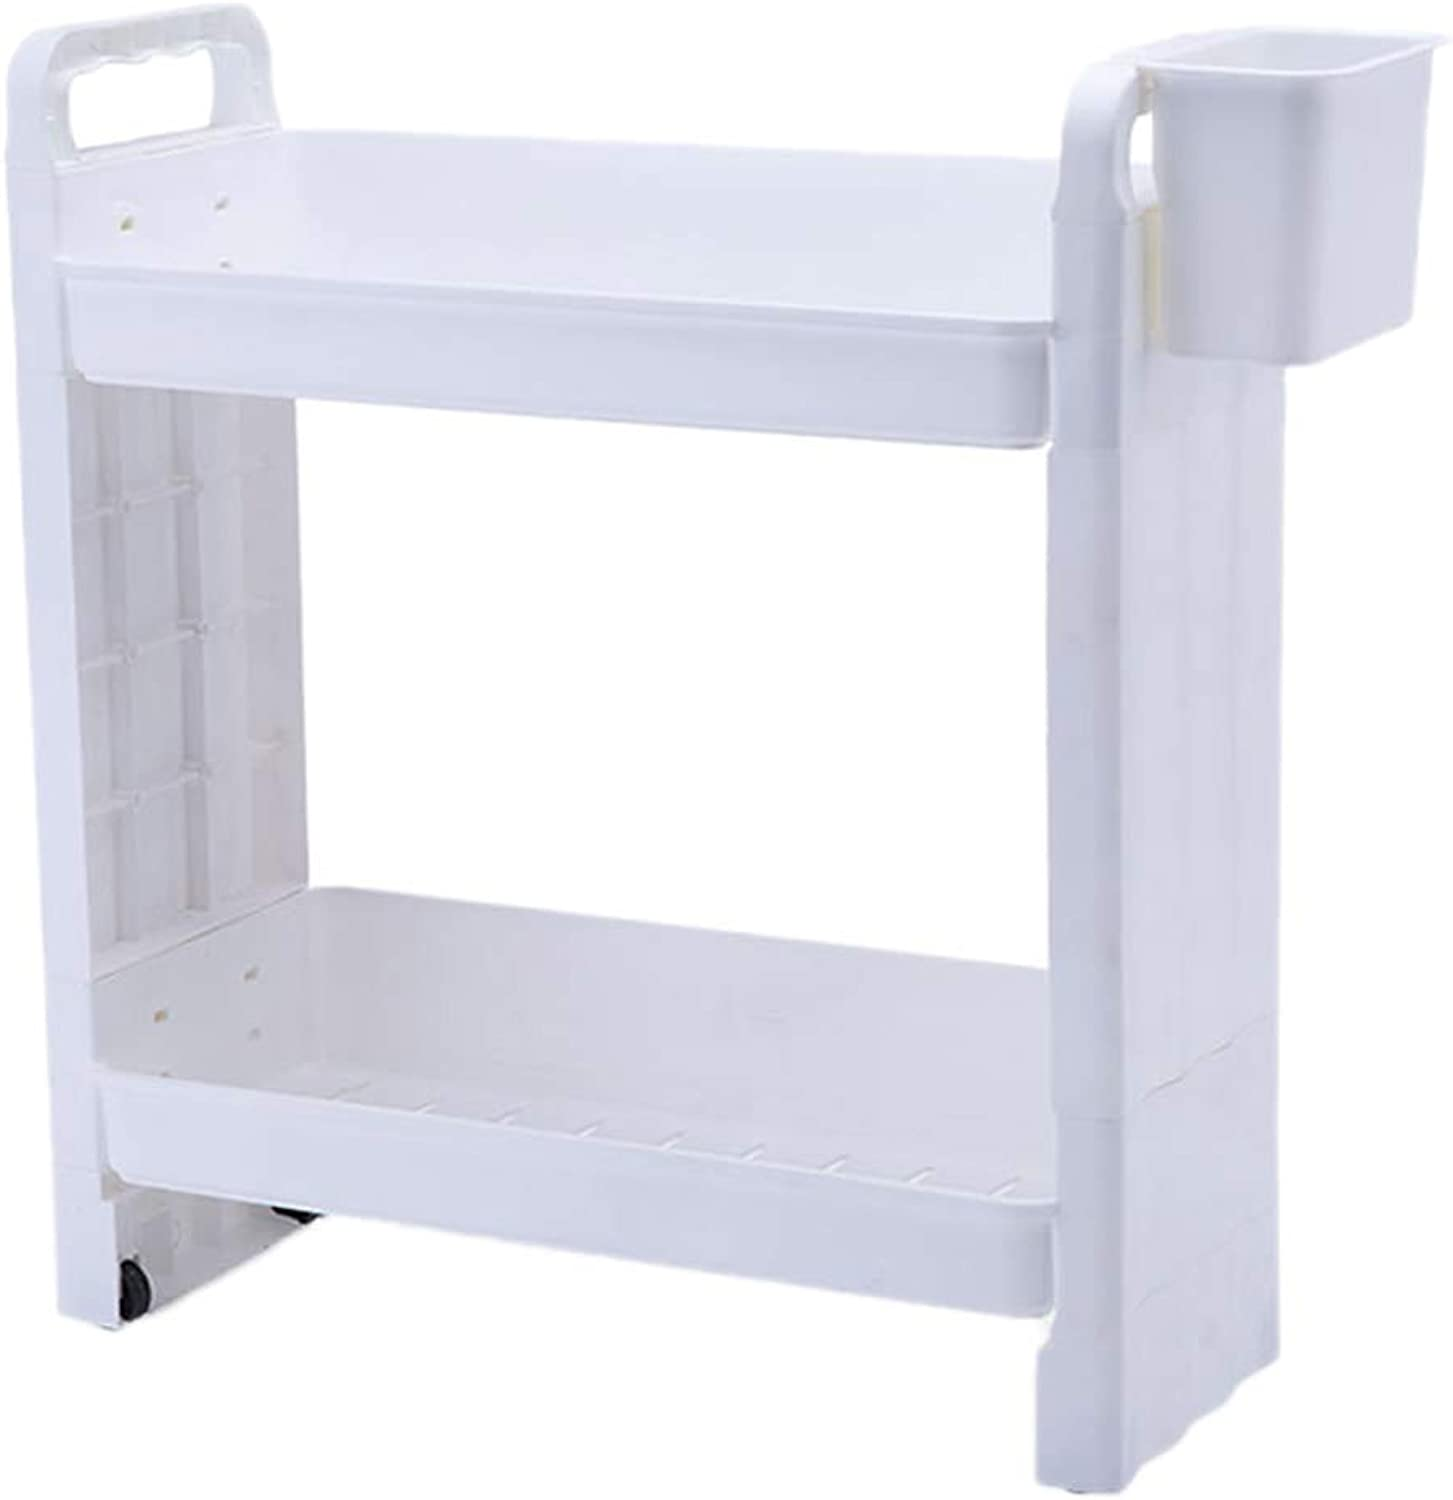 HUYP Sewn Storage Rack Removable Pulley Refrigerator Gap Kitchen Bathroom Storage Shelf (Size   S)